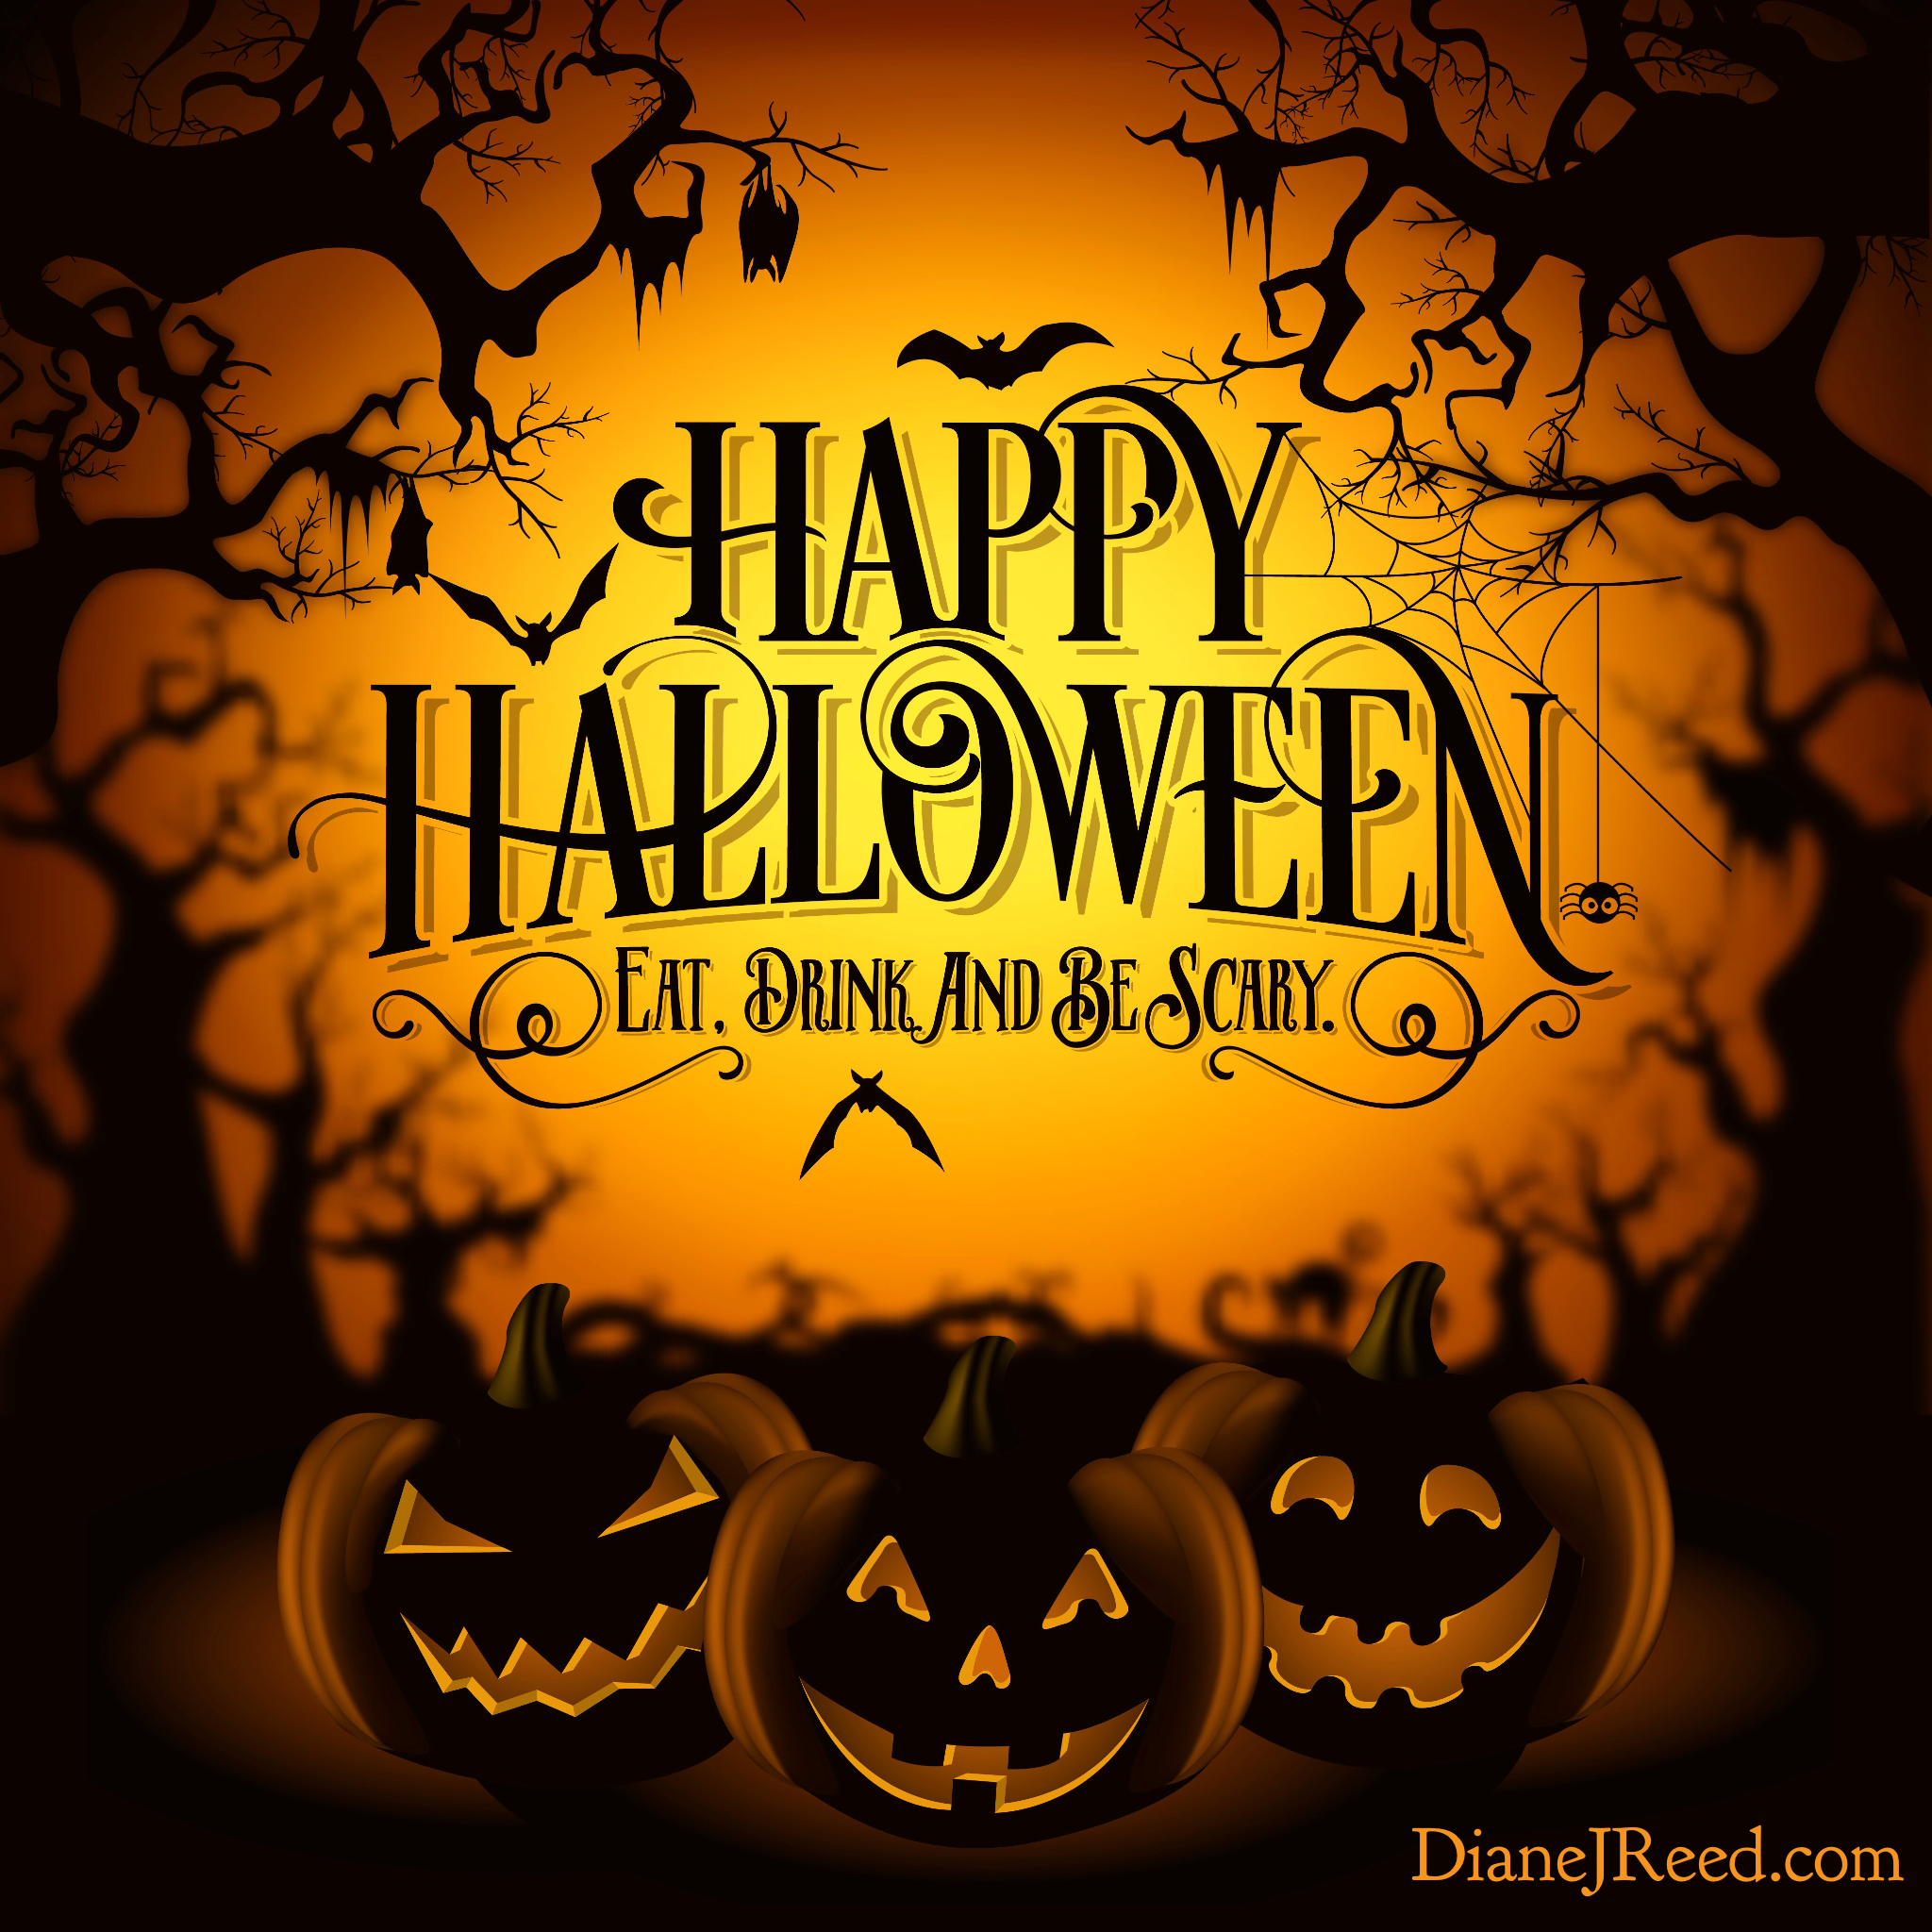 Happy Halloween! May your day be filled with spooky